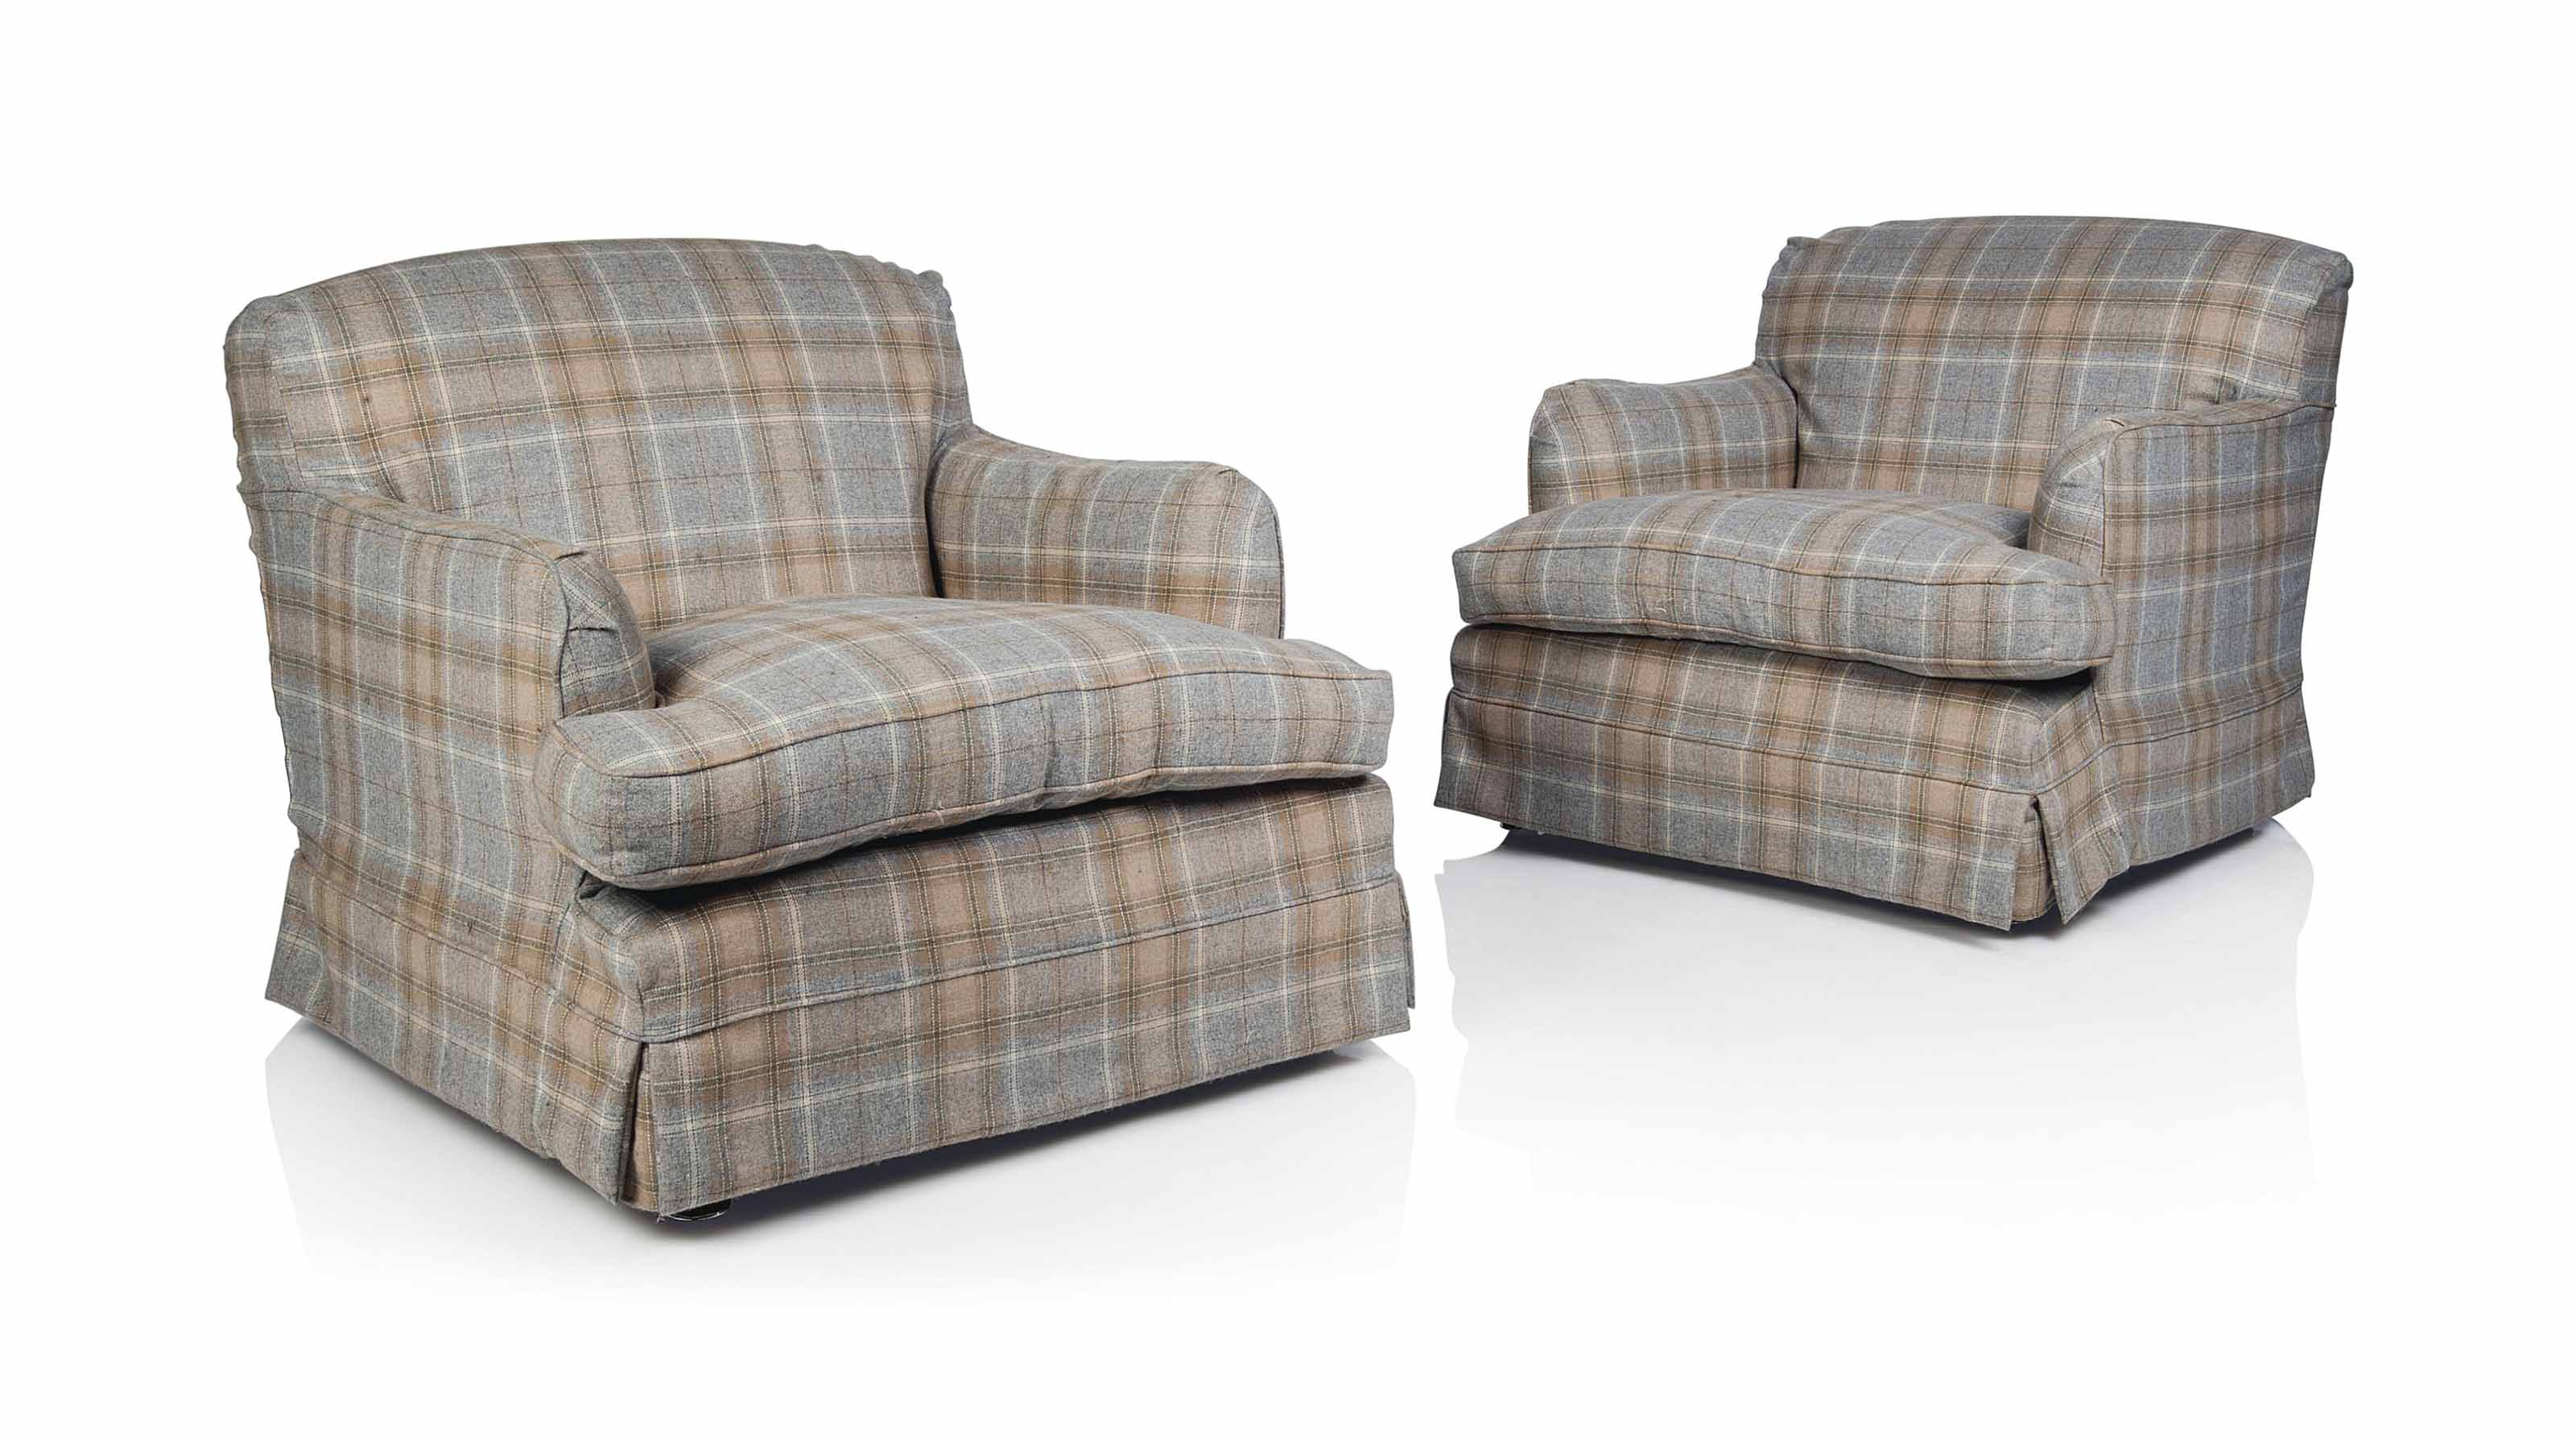 loose covers for queen anne chairs folding futon chair a pair of large easy armchairs modern in the manner